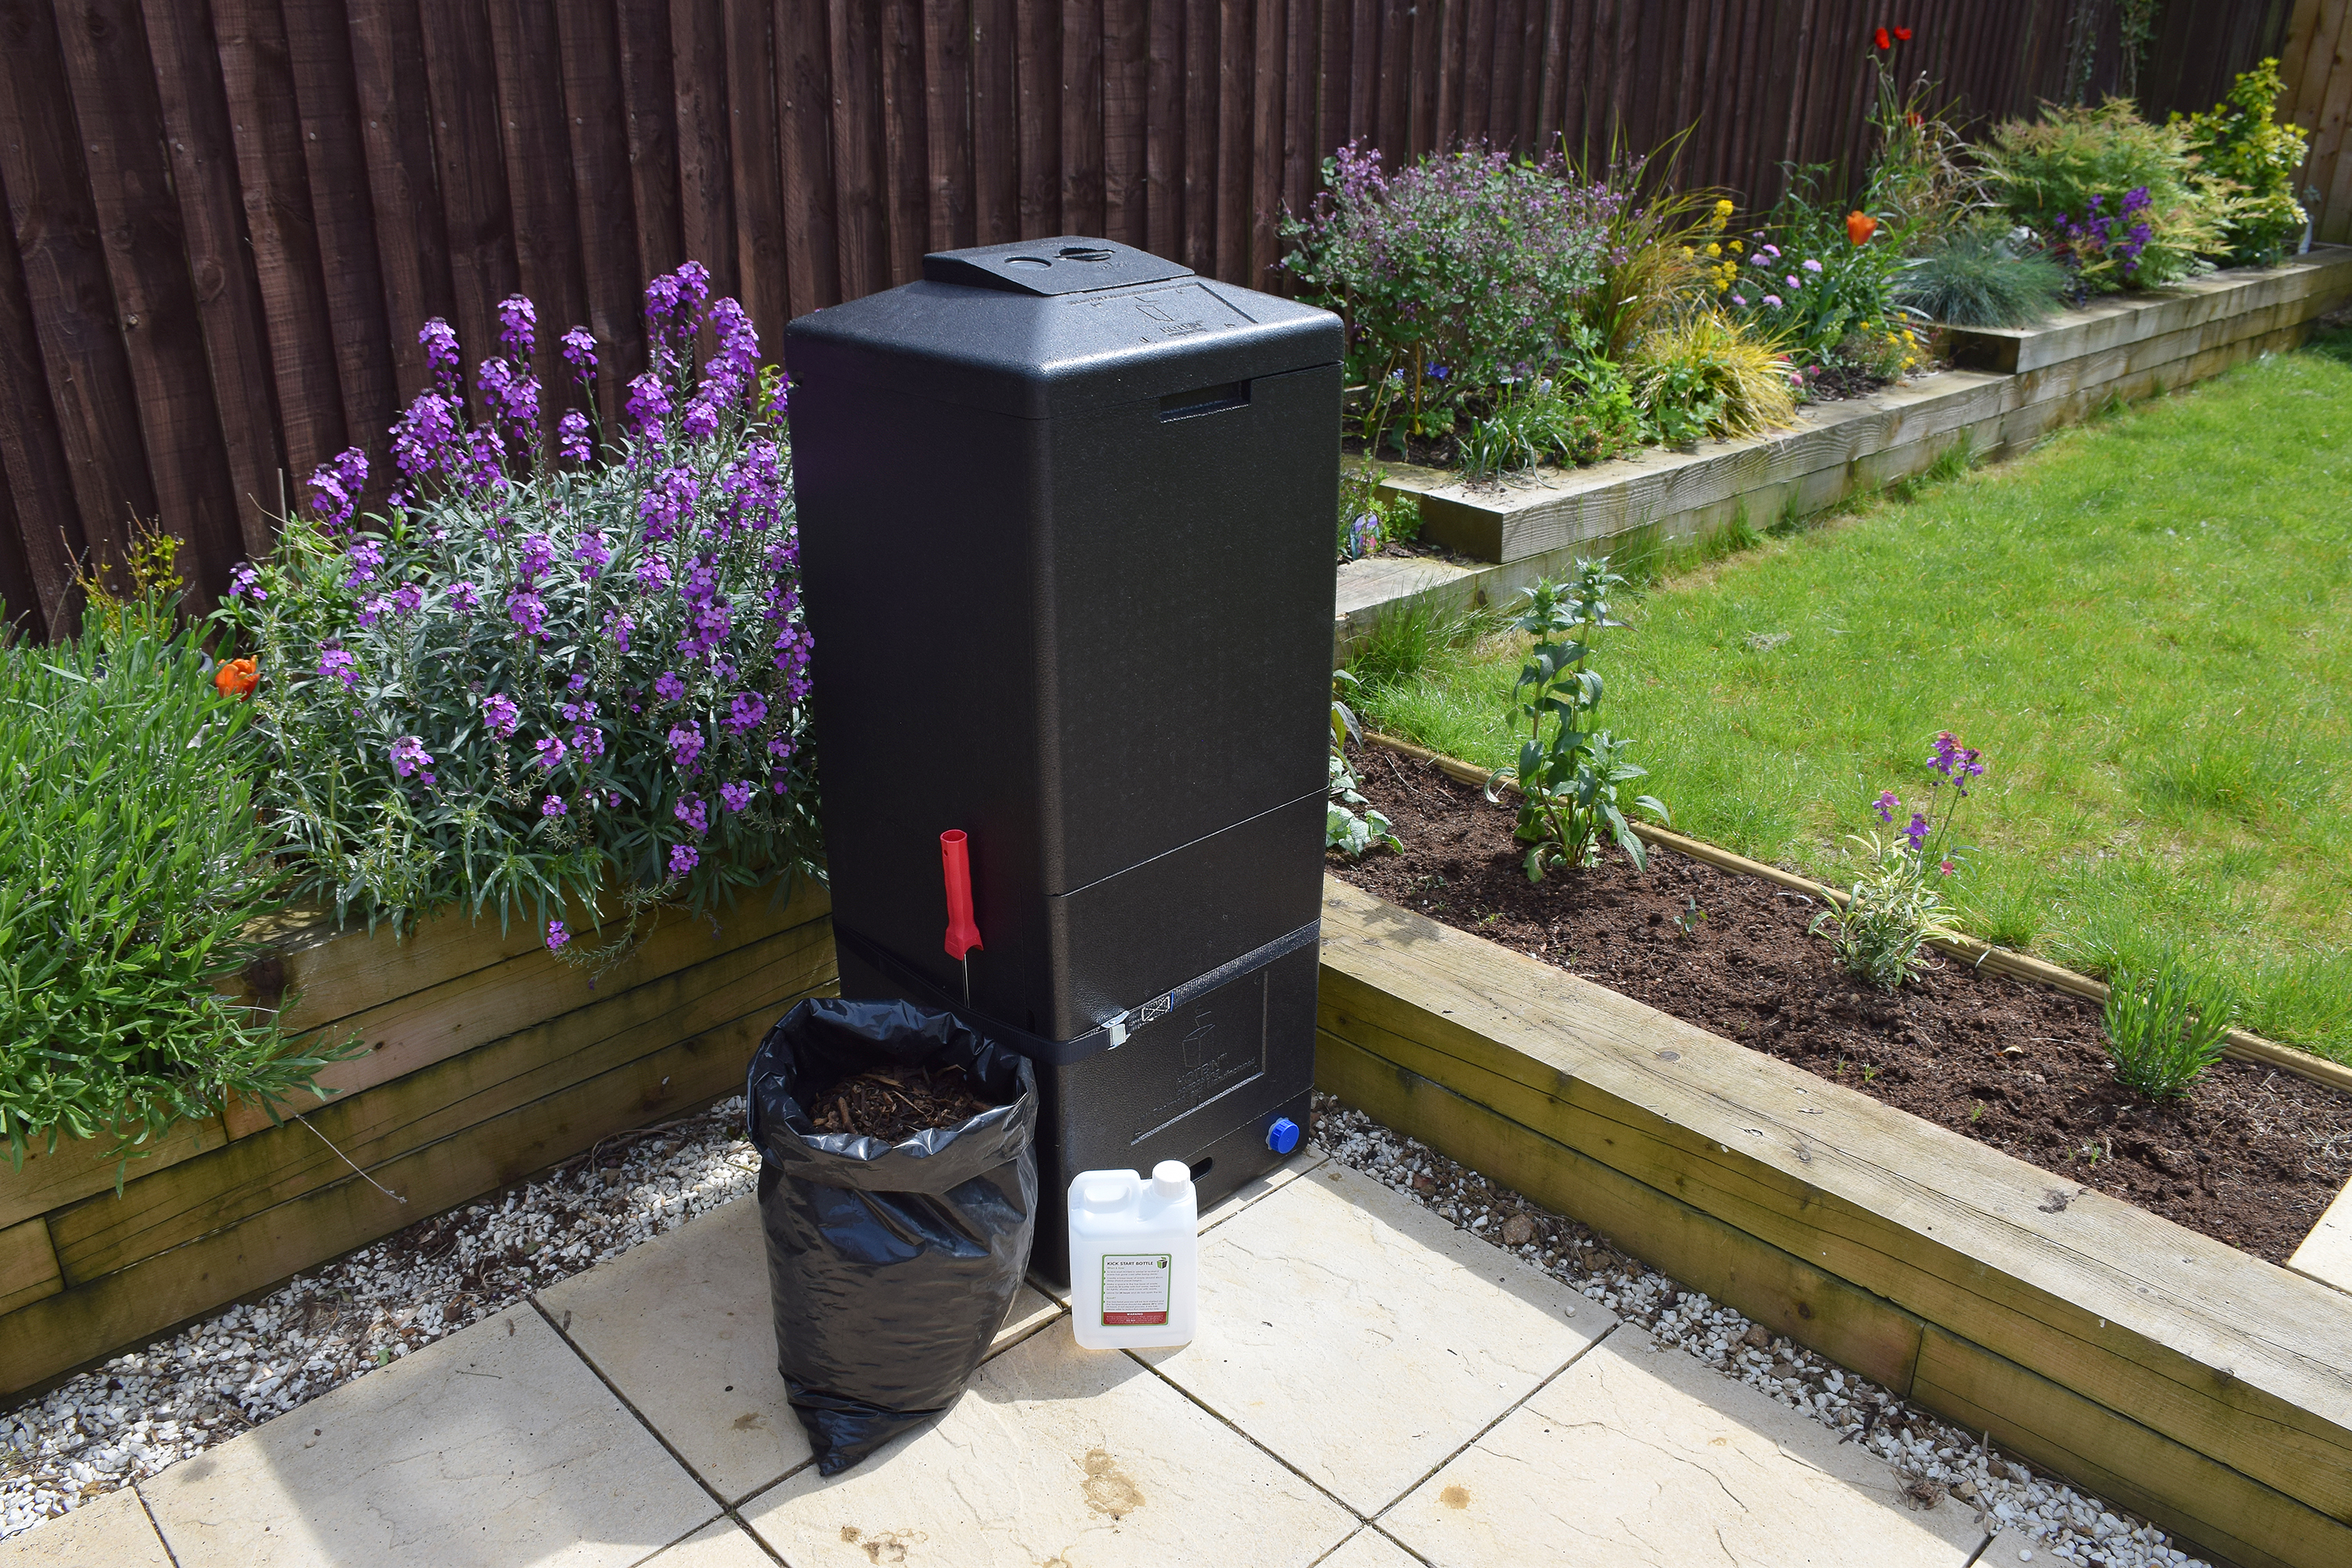 HOTBIN Mini Shortlisted for RHS Chelsea Product of the Year